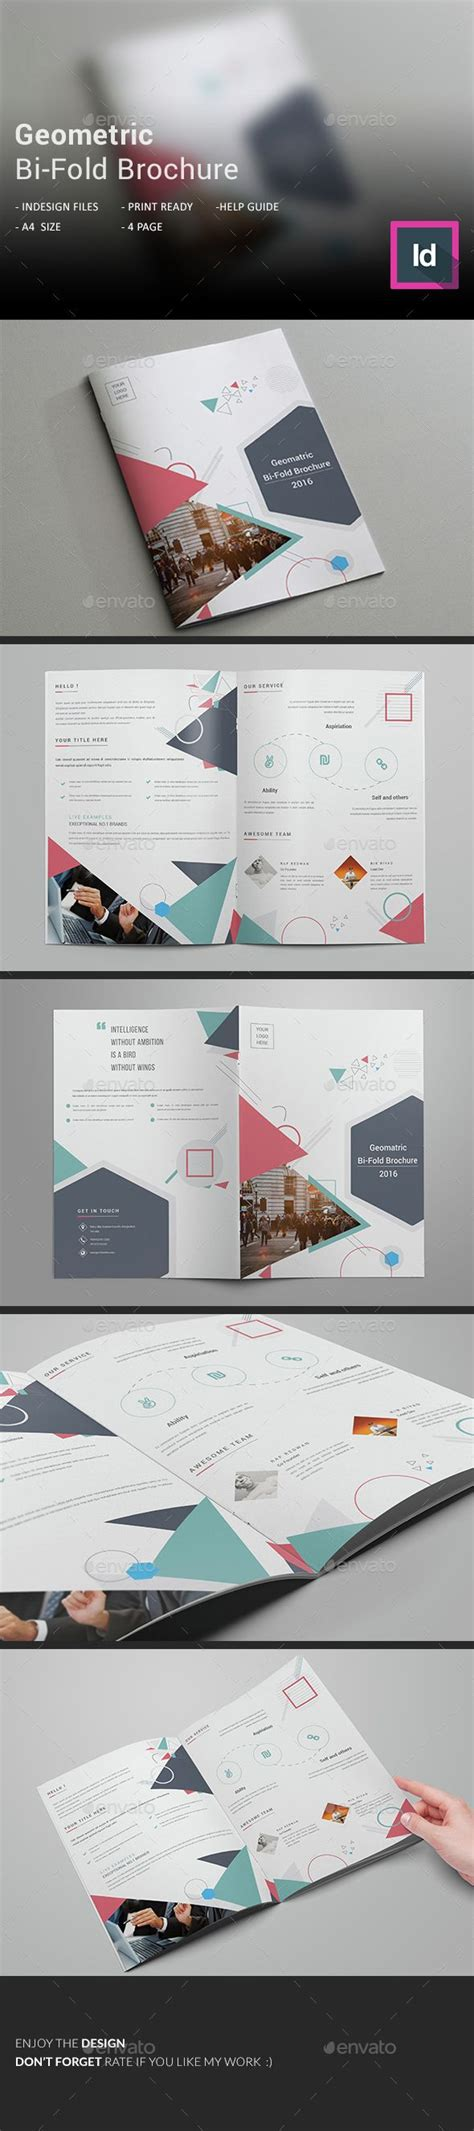 Bi Fold Brochure Template Indesign 1000 ideas about bi fold brochure on brochure